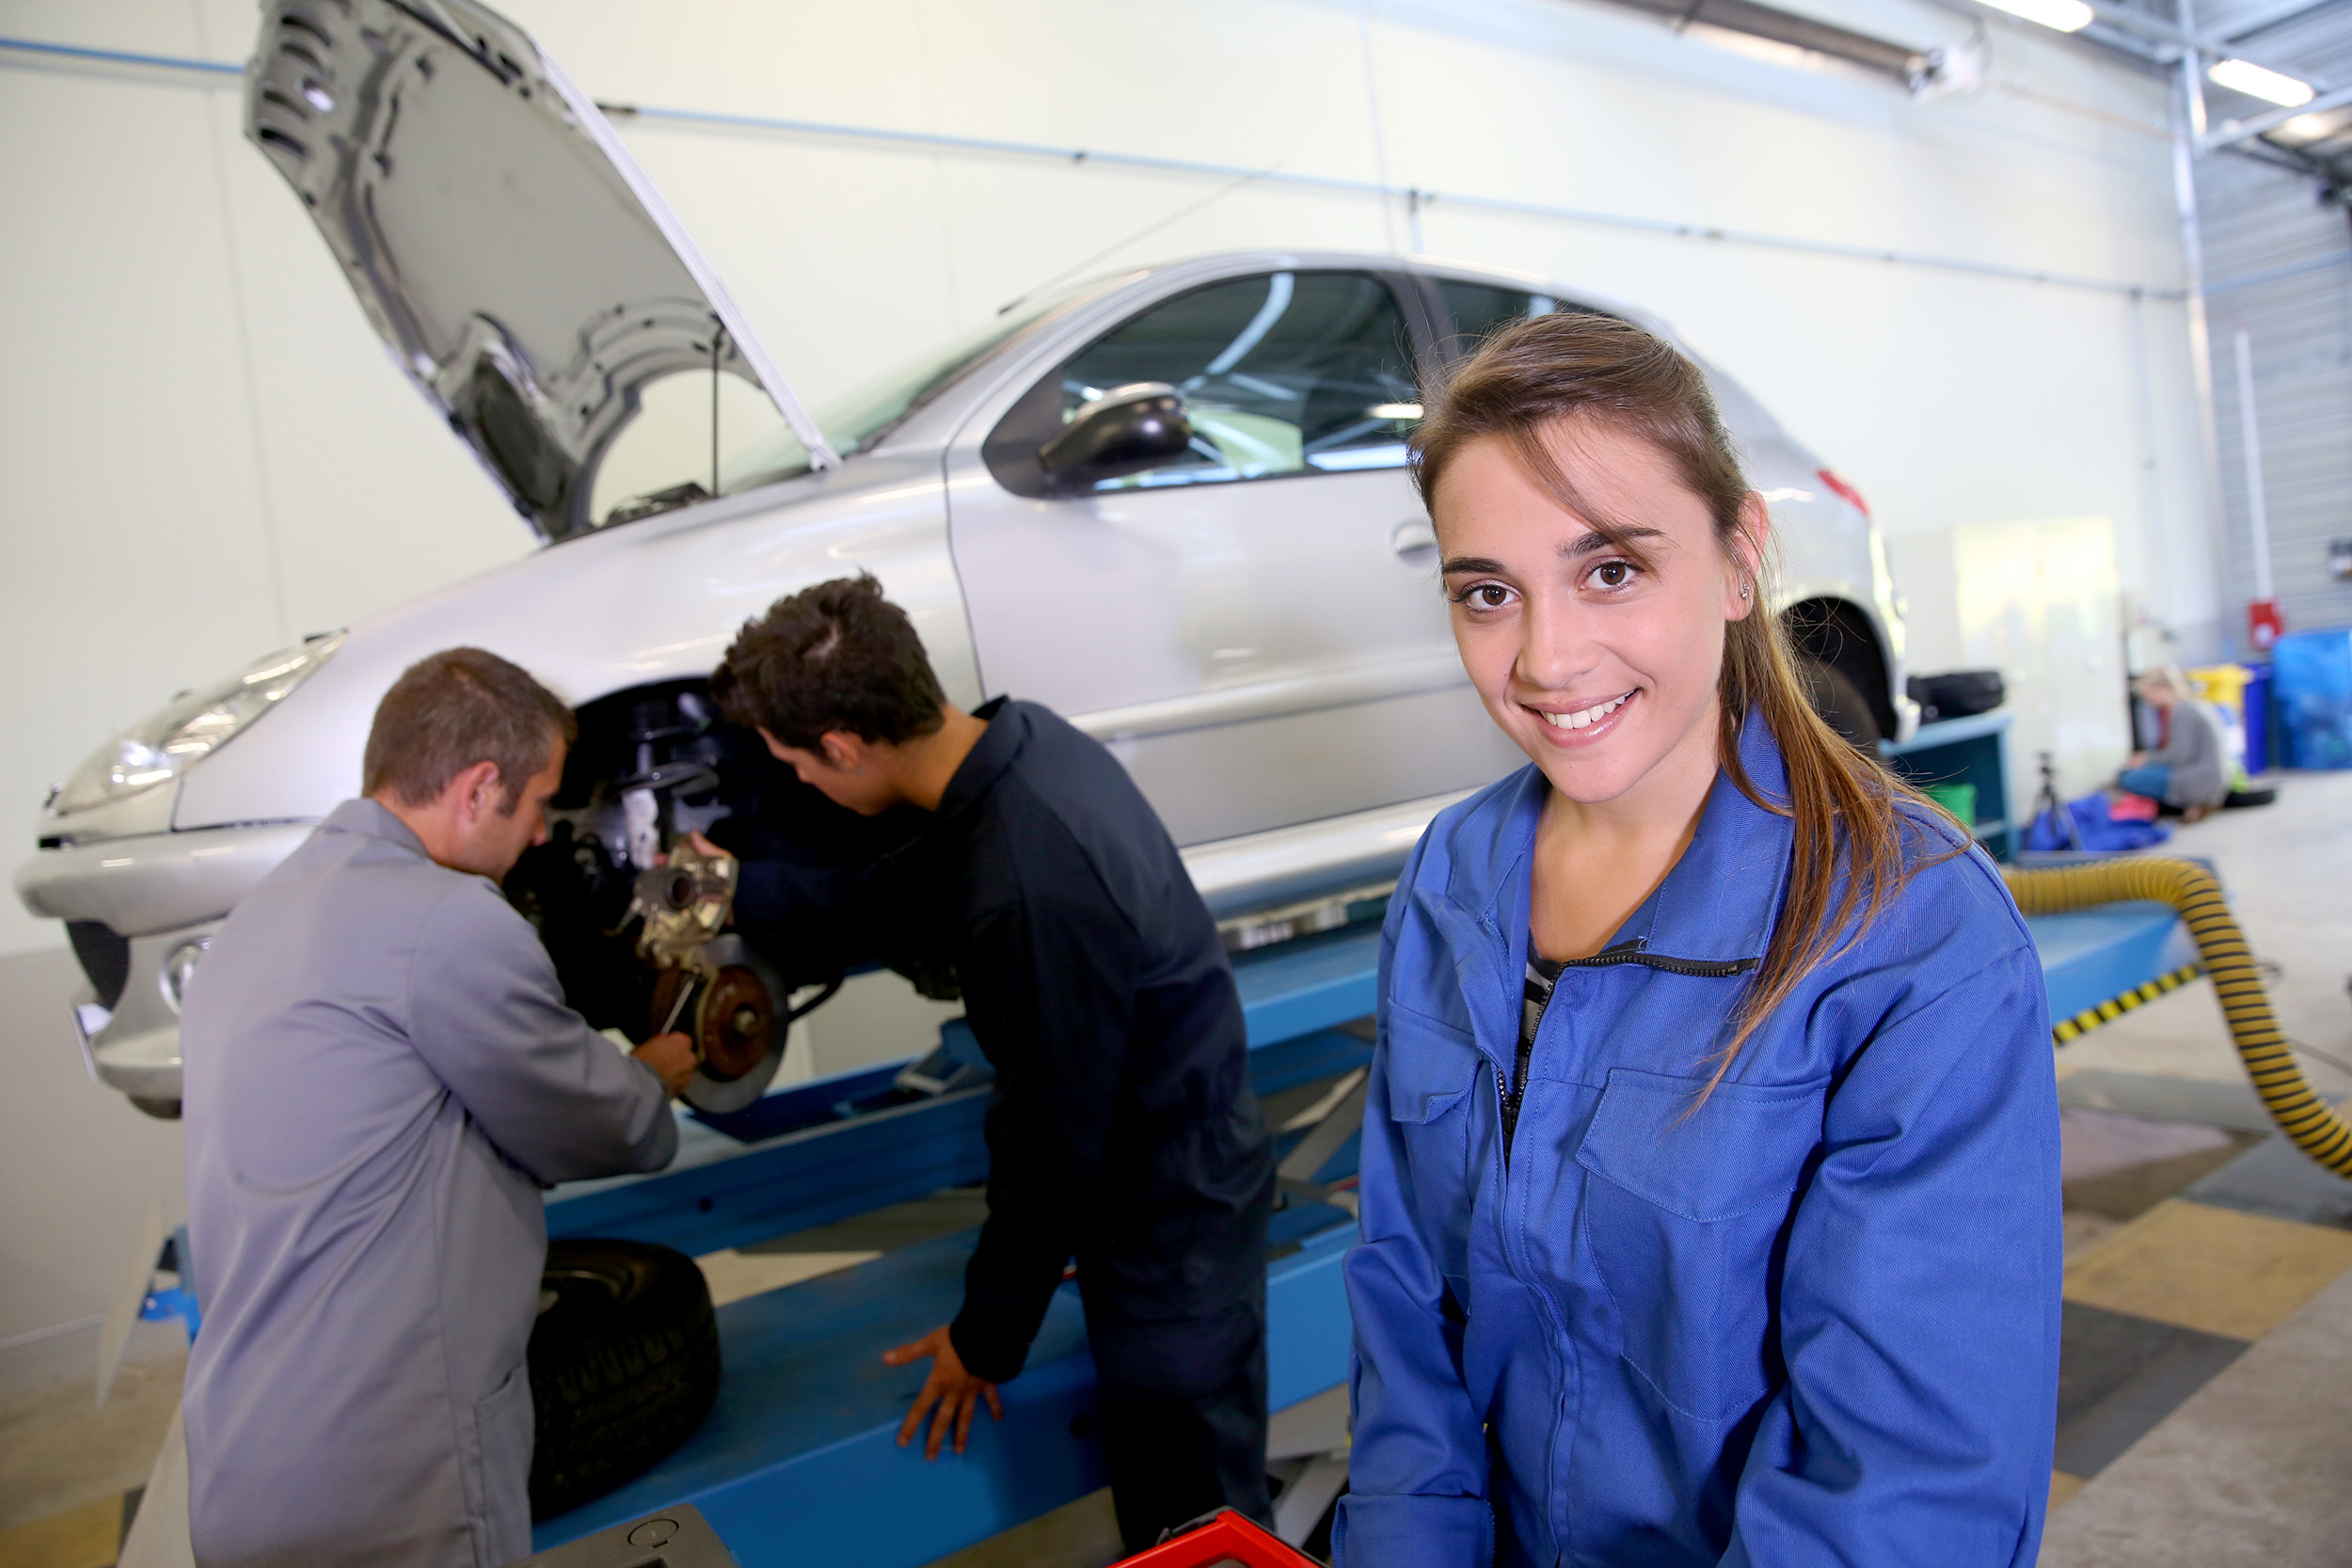 Teacher and students at work in garage